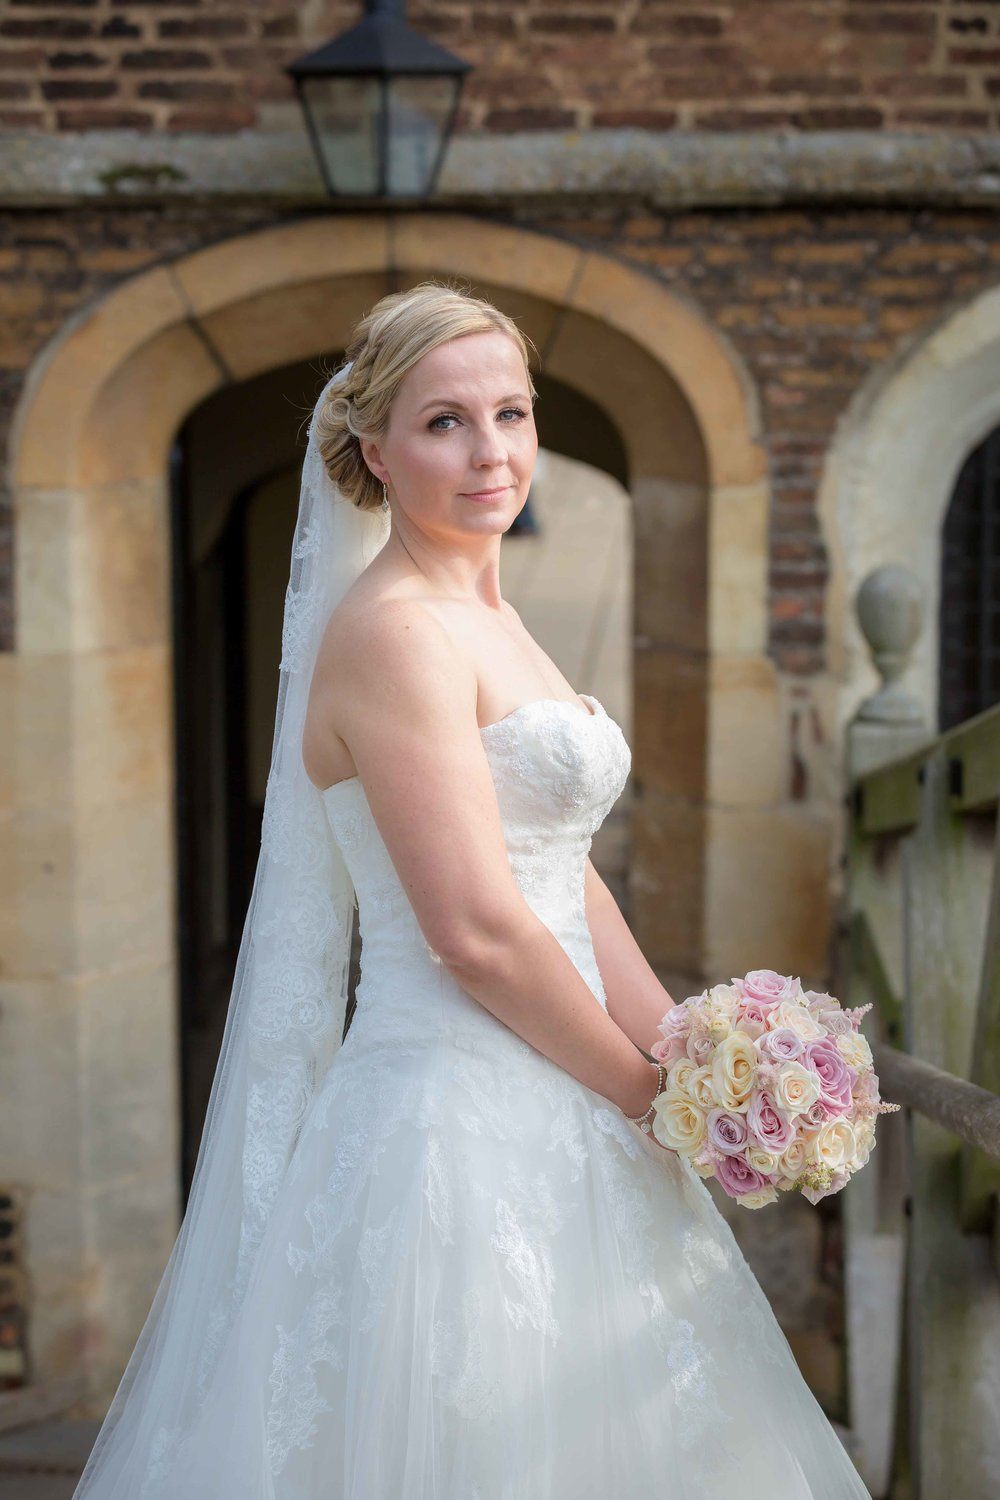 Adrian_Nicole_Charnwood_Weddings_Queens_College_Cambridge-1003.jpg